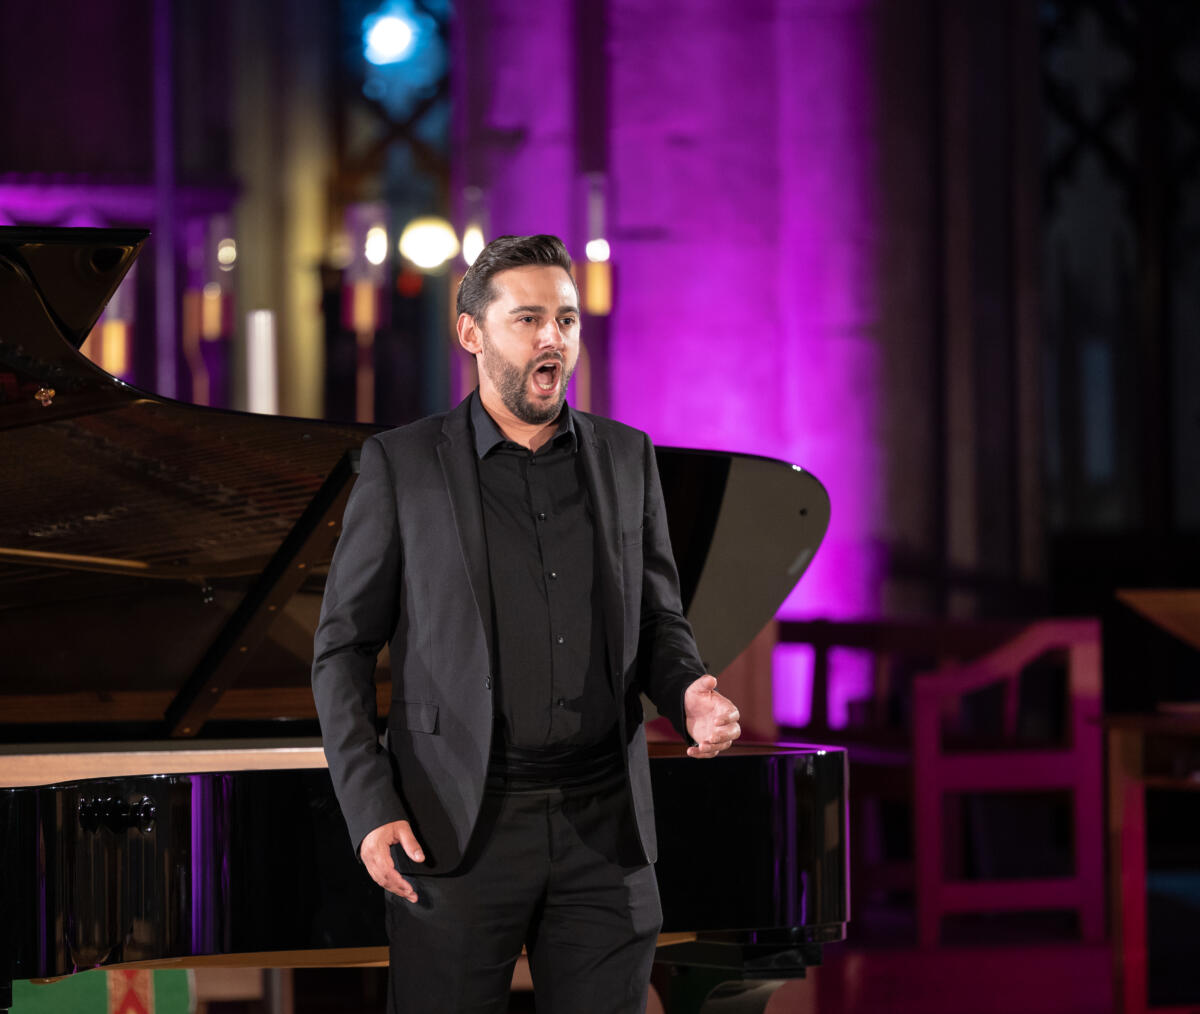 Credit: Stephen Boffey. Recital at St Albans Cathedral with Roderick Williams & Susie Allen, July 2021